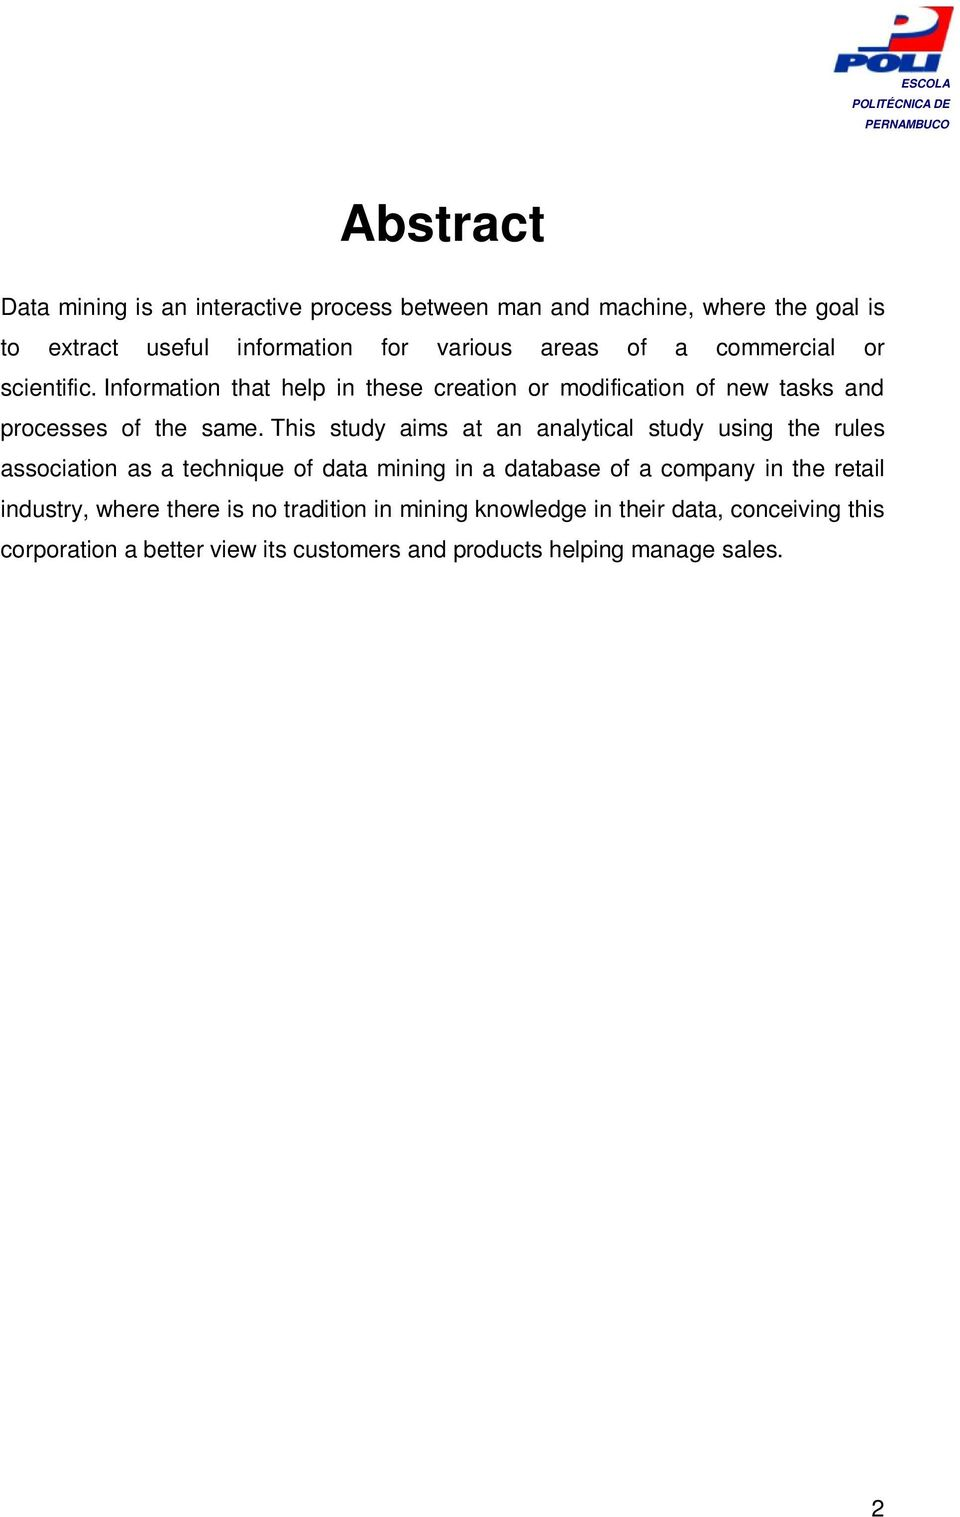 This study aims at an analytical study using the rules association as a technique of data mining in a database of a company in the retail